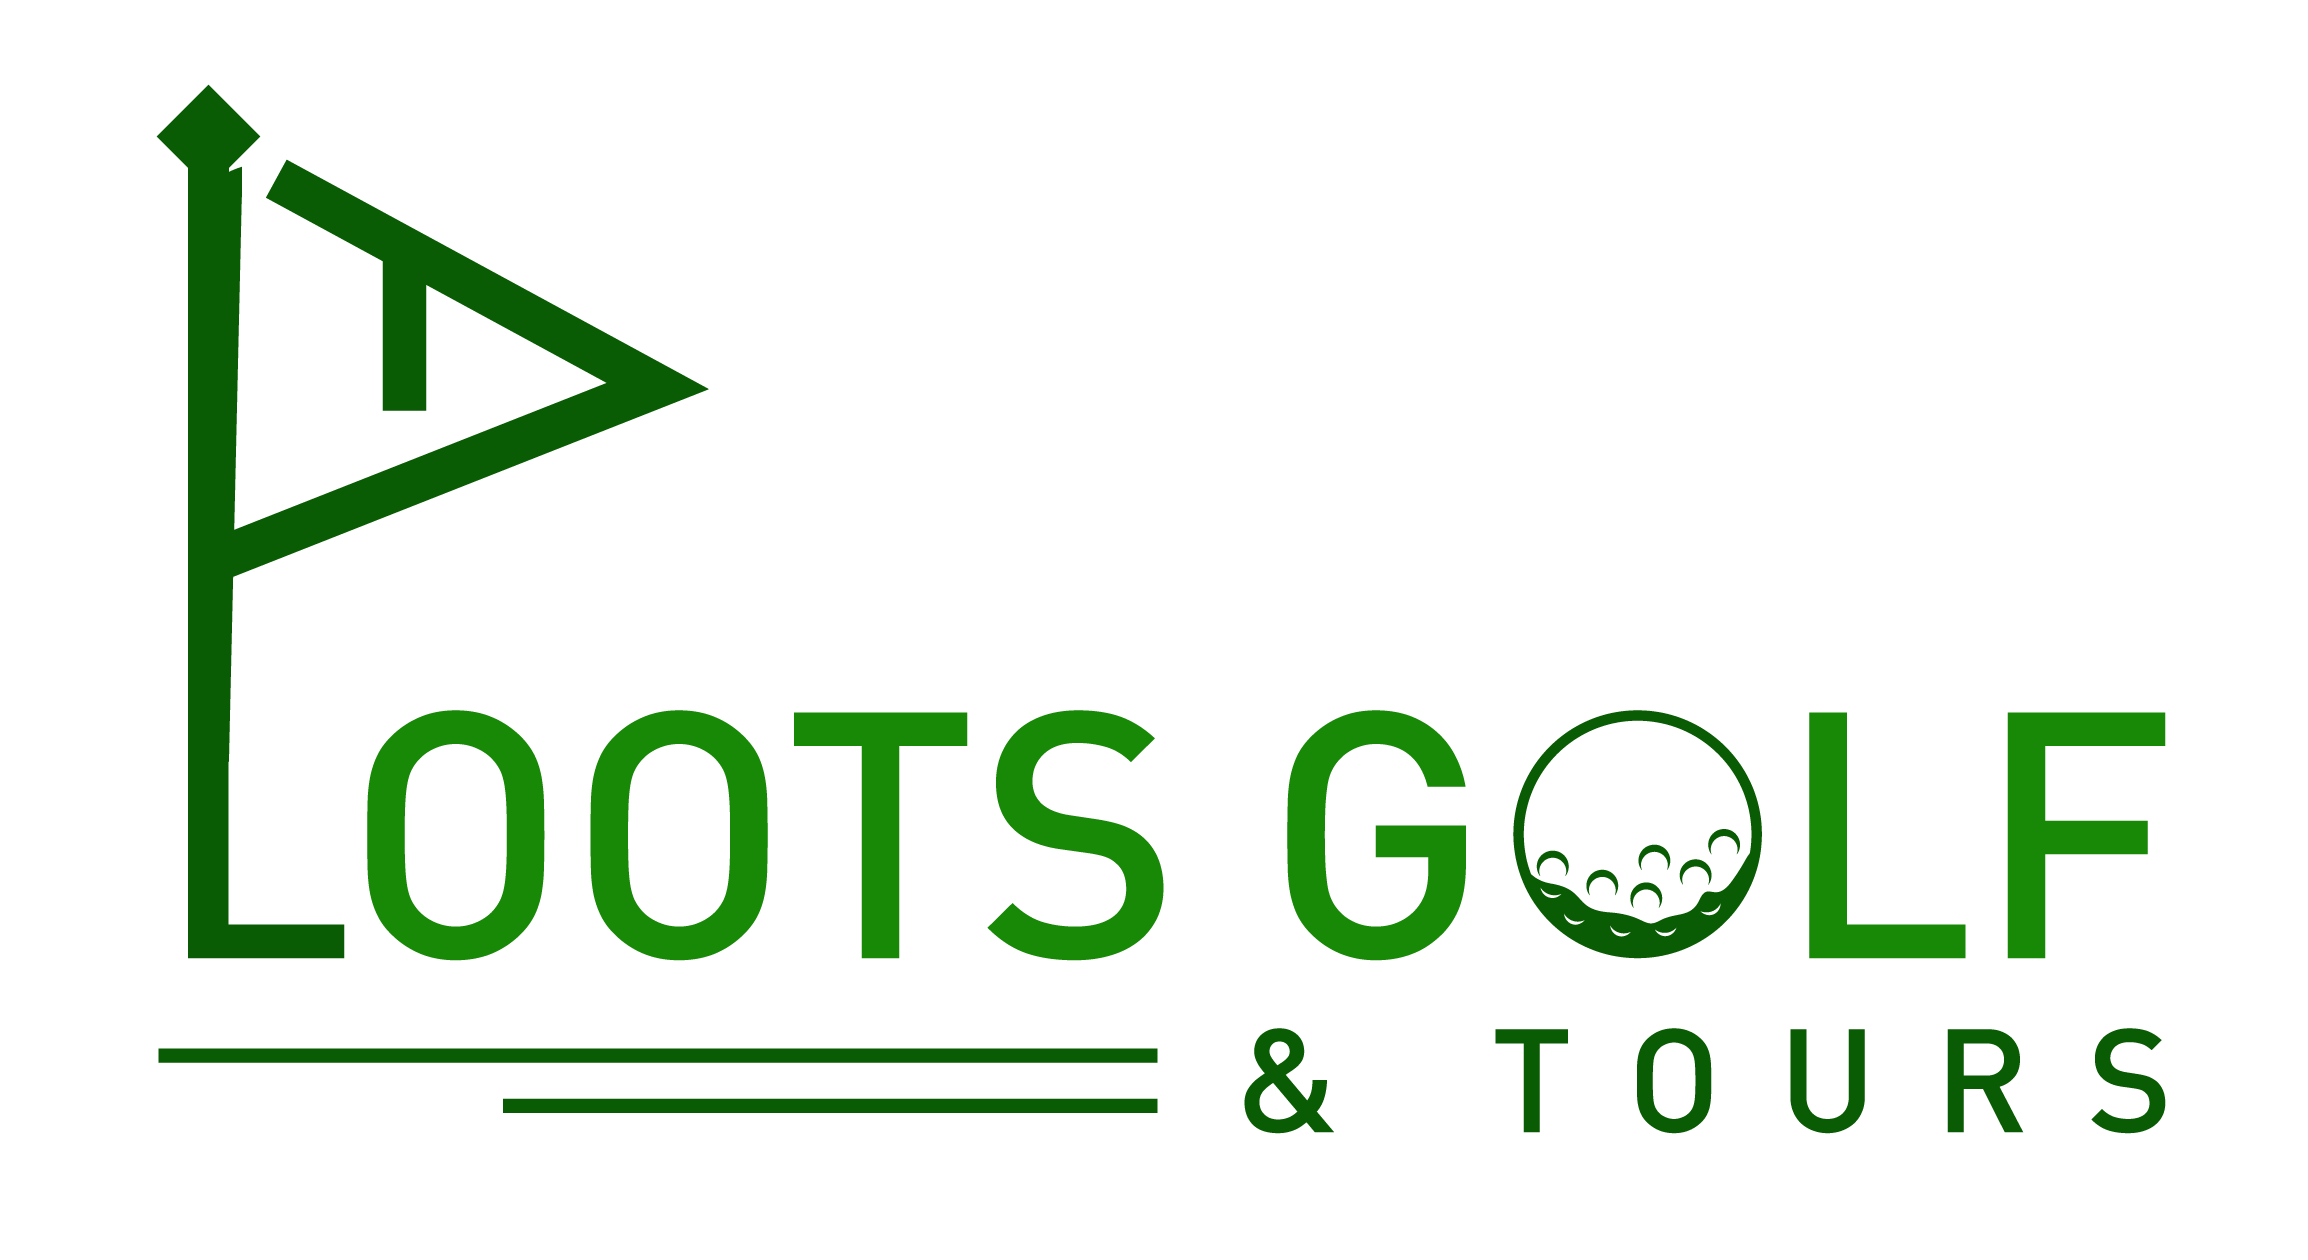 Loots Golf & Tours